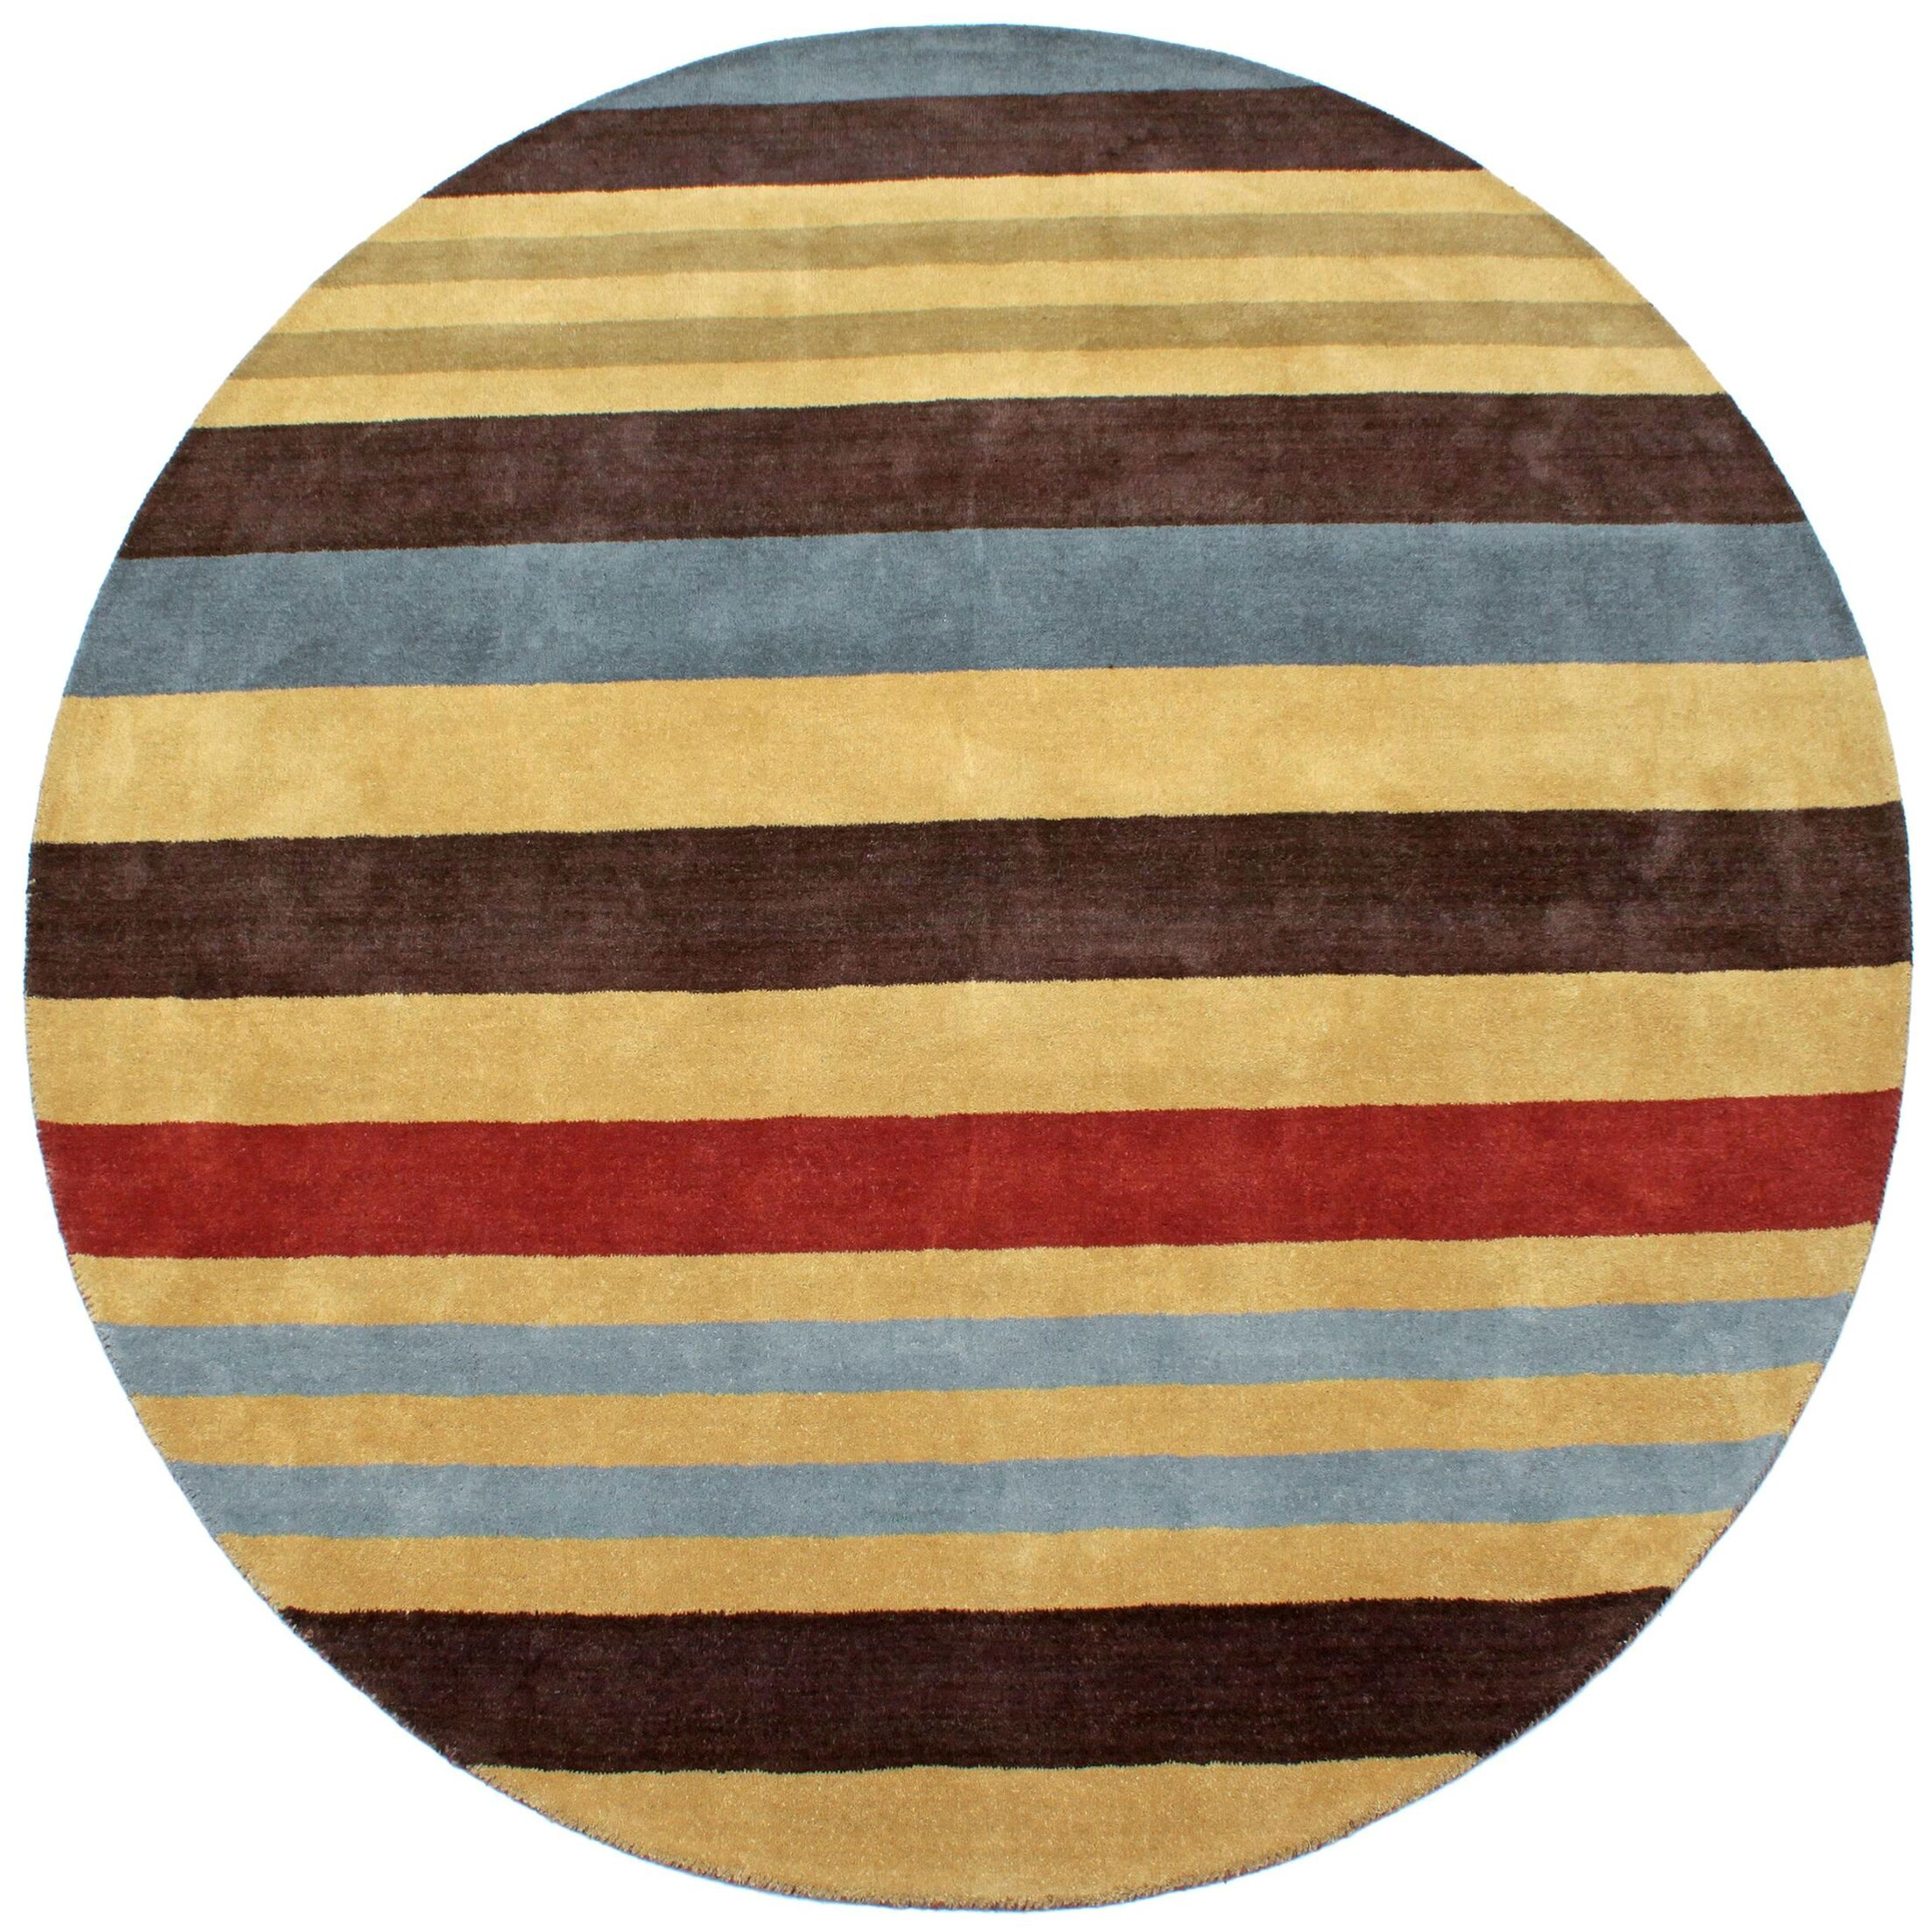 Cosmo Rug Rug Size: Round 6'